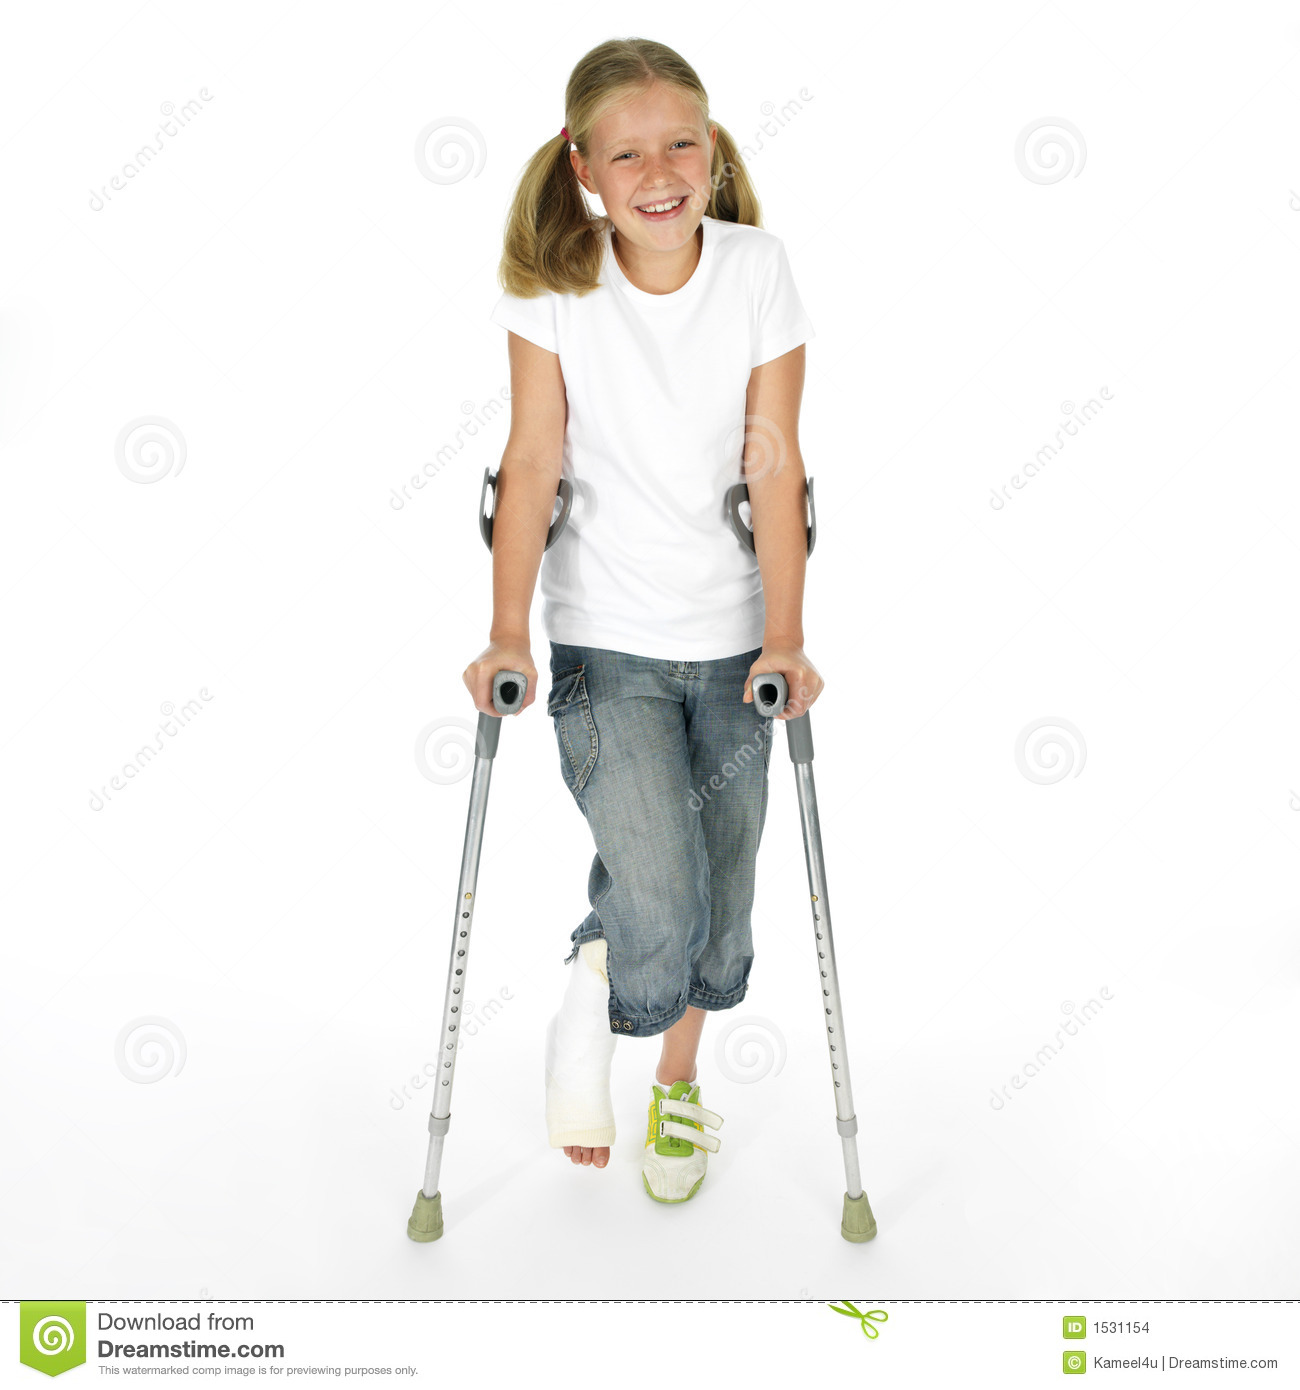 More similar stock images of ` Girl with a broken leg walking on ...